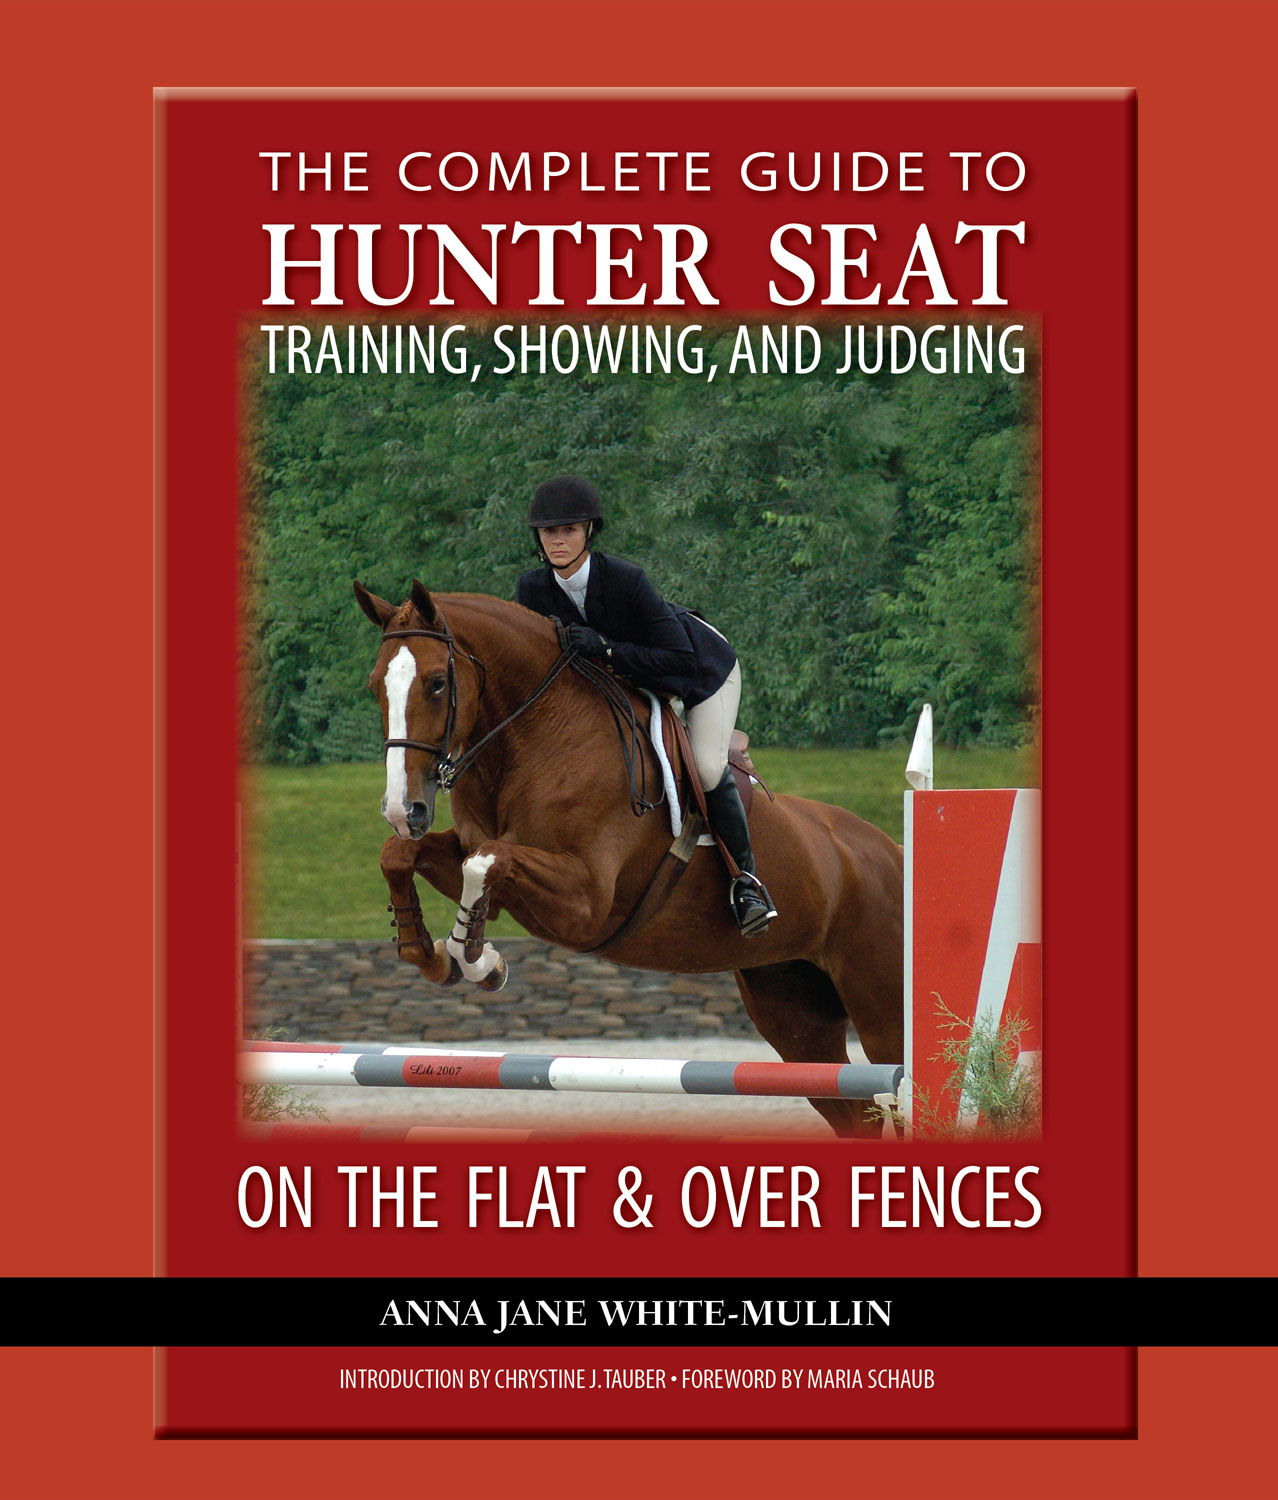 The Complete Guide to Hunter Seat Training, Showing, and Judging By: Anna Jane White-Mullin